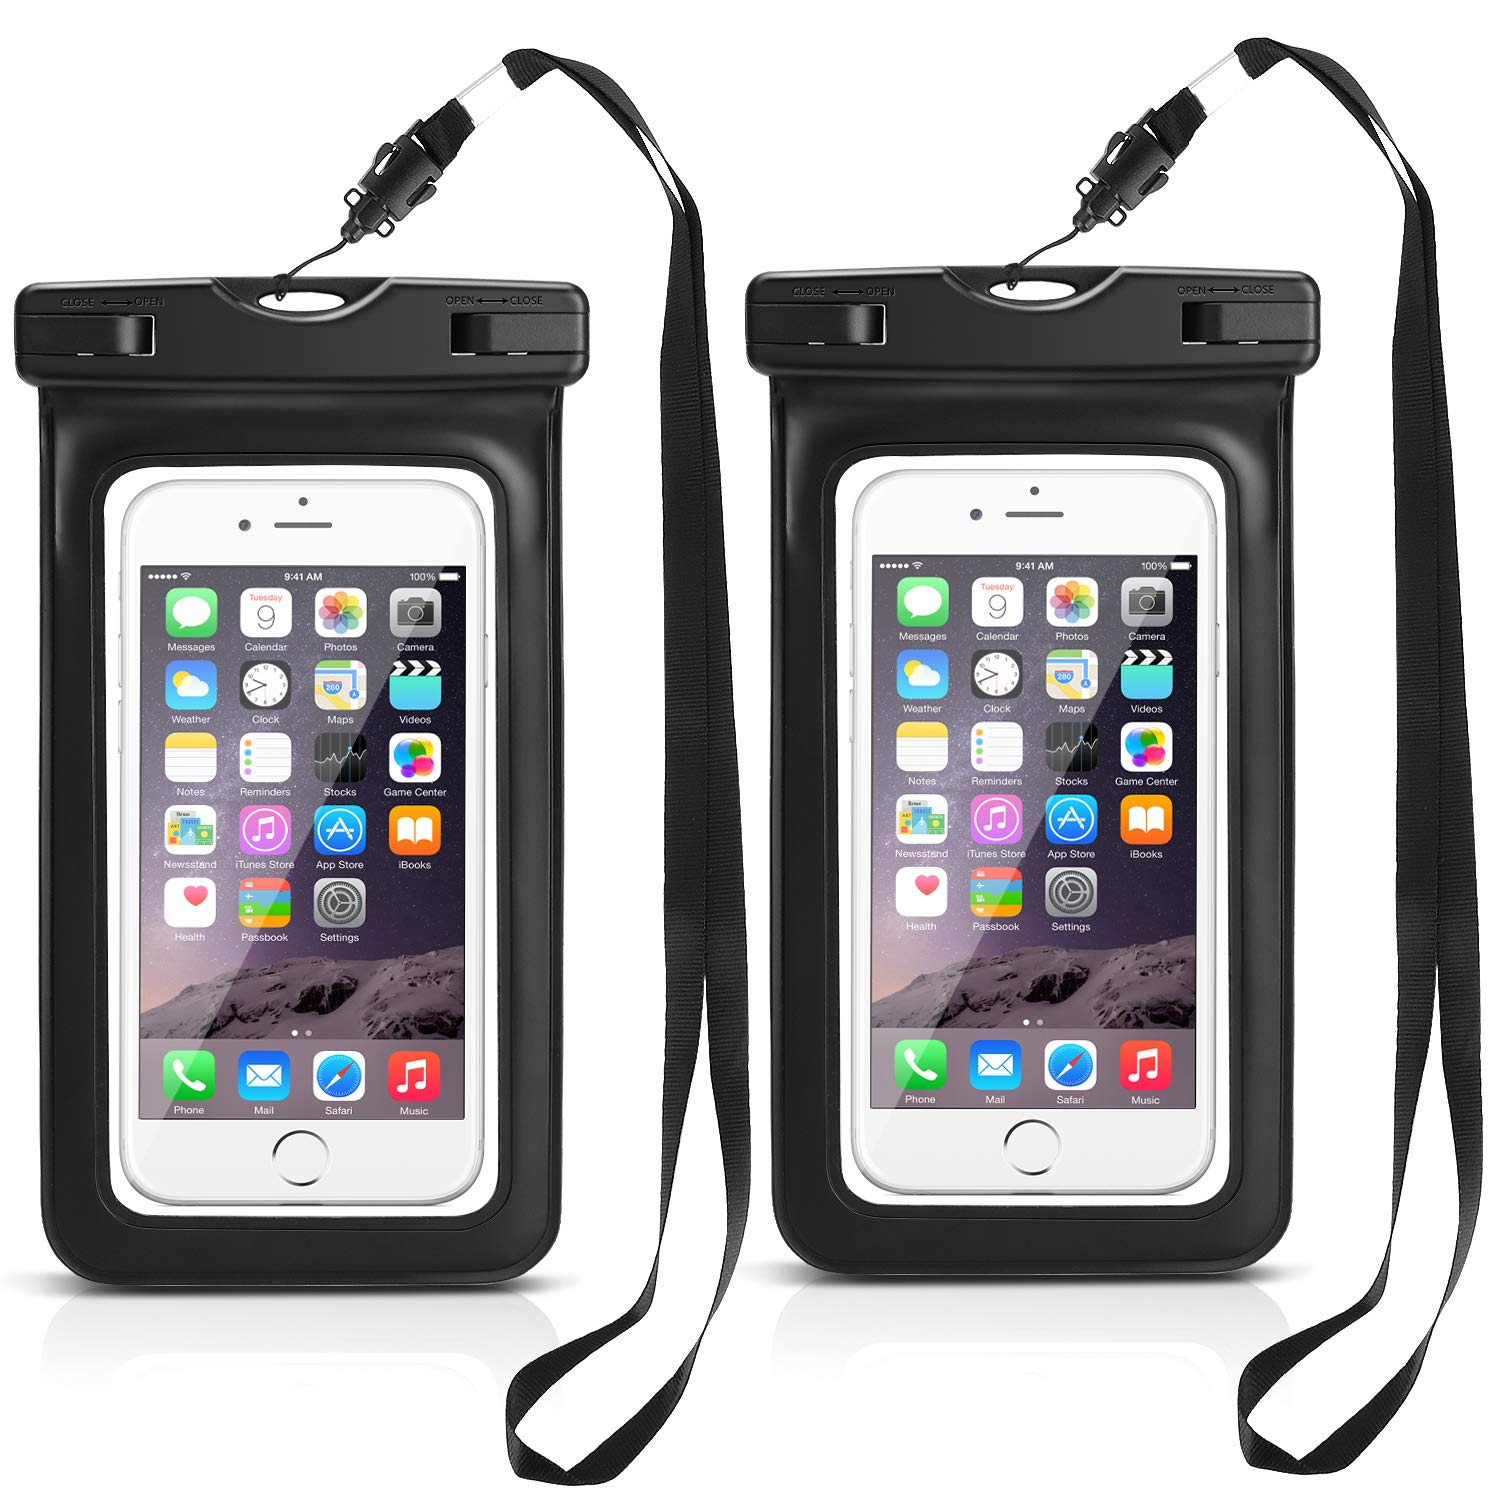 low cost 09b1e f7cb5 PEYOU Waterproof Phone Case, 2 Pack Universal IPX8 Waterproof Cell Phone  Dry Bag Pouch for Apple iPhone Xs/Xs Max/X/8/8 Plus/7/7 Plus/6S/6,  Compatible ...